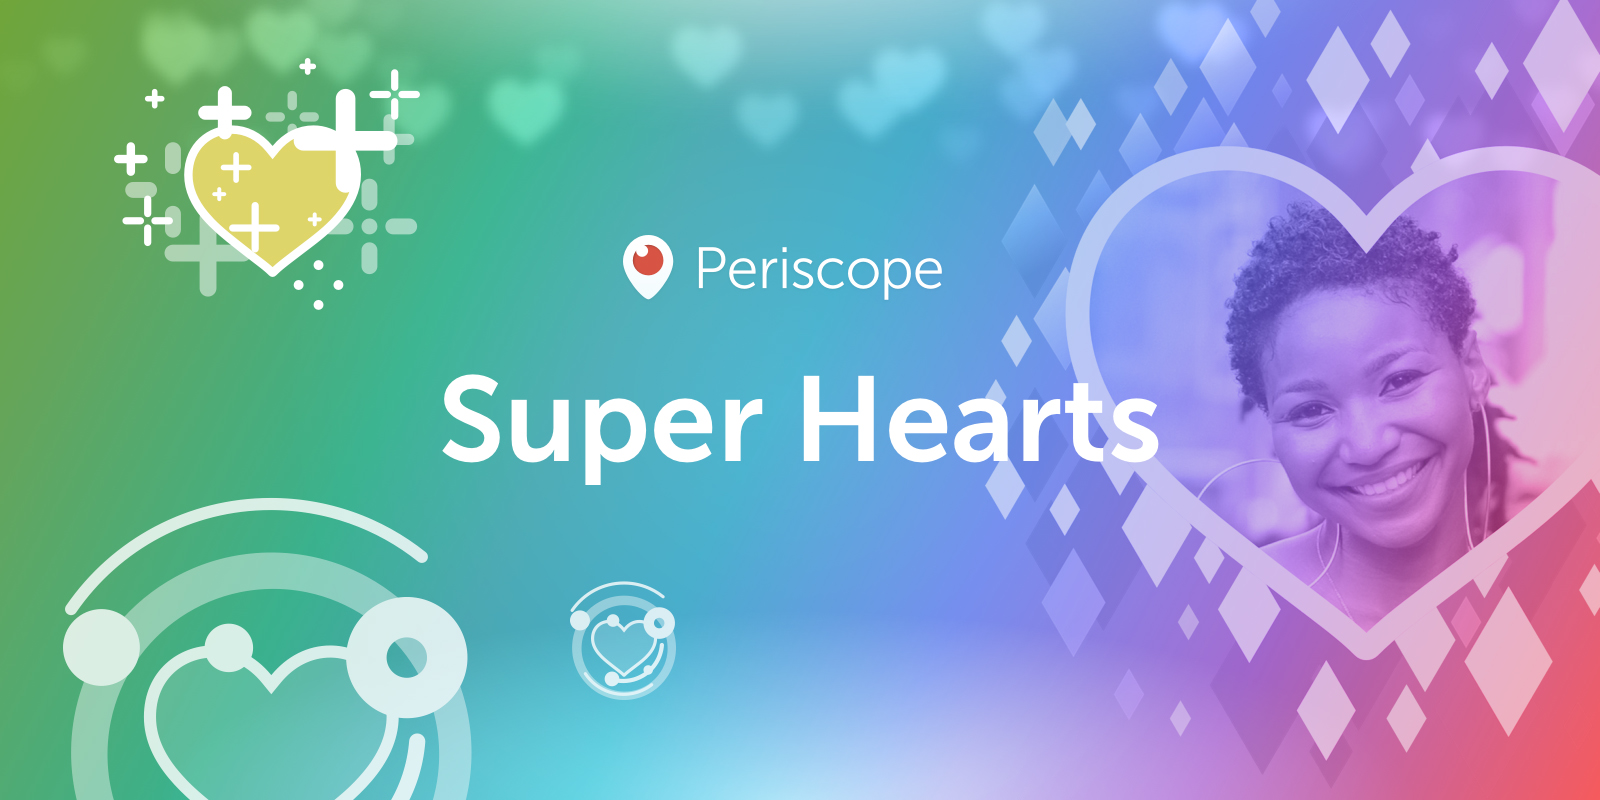 Twitter rolls out Super Hearts, its first paid virtual gift product, for Periscope